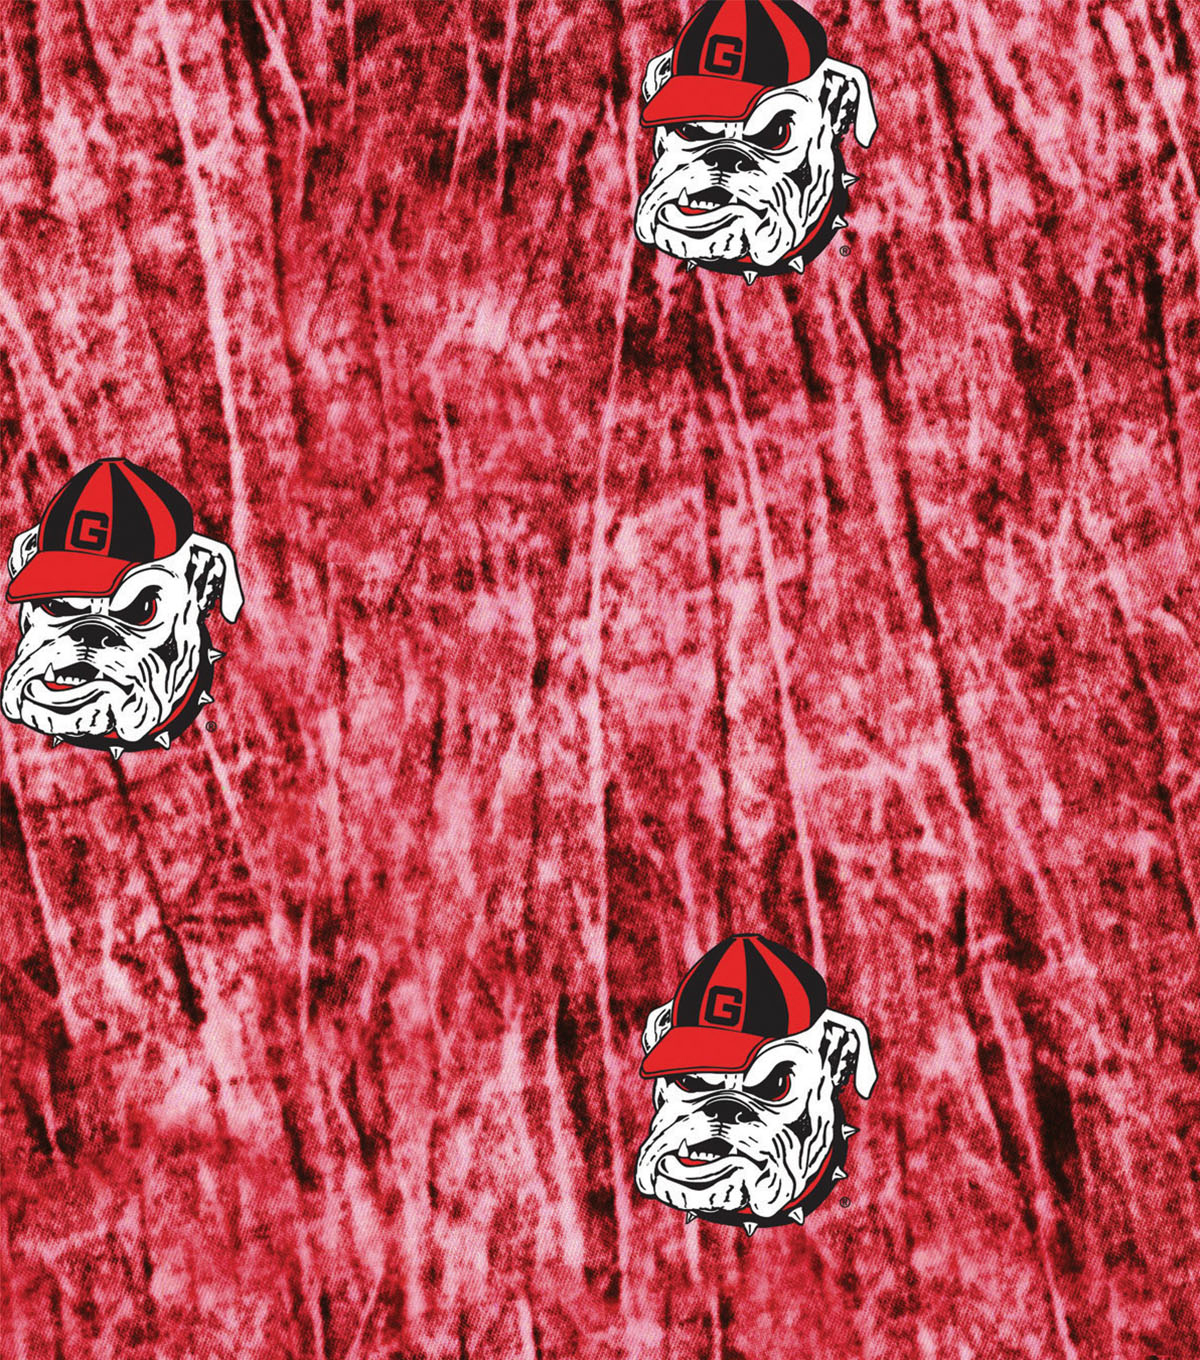 University of Georgia Bulldogs Cotton Fabric 44\u0022-Tie Dye